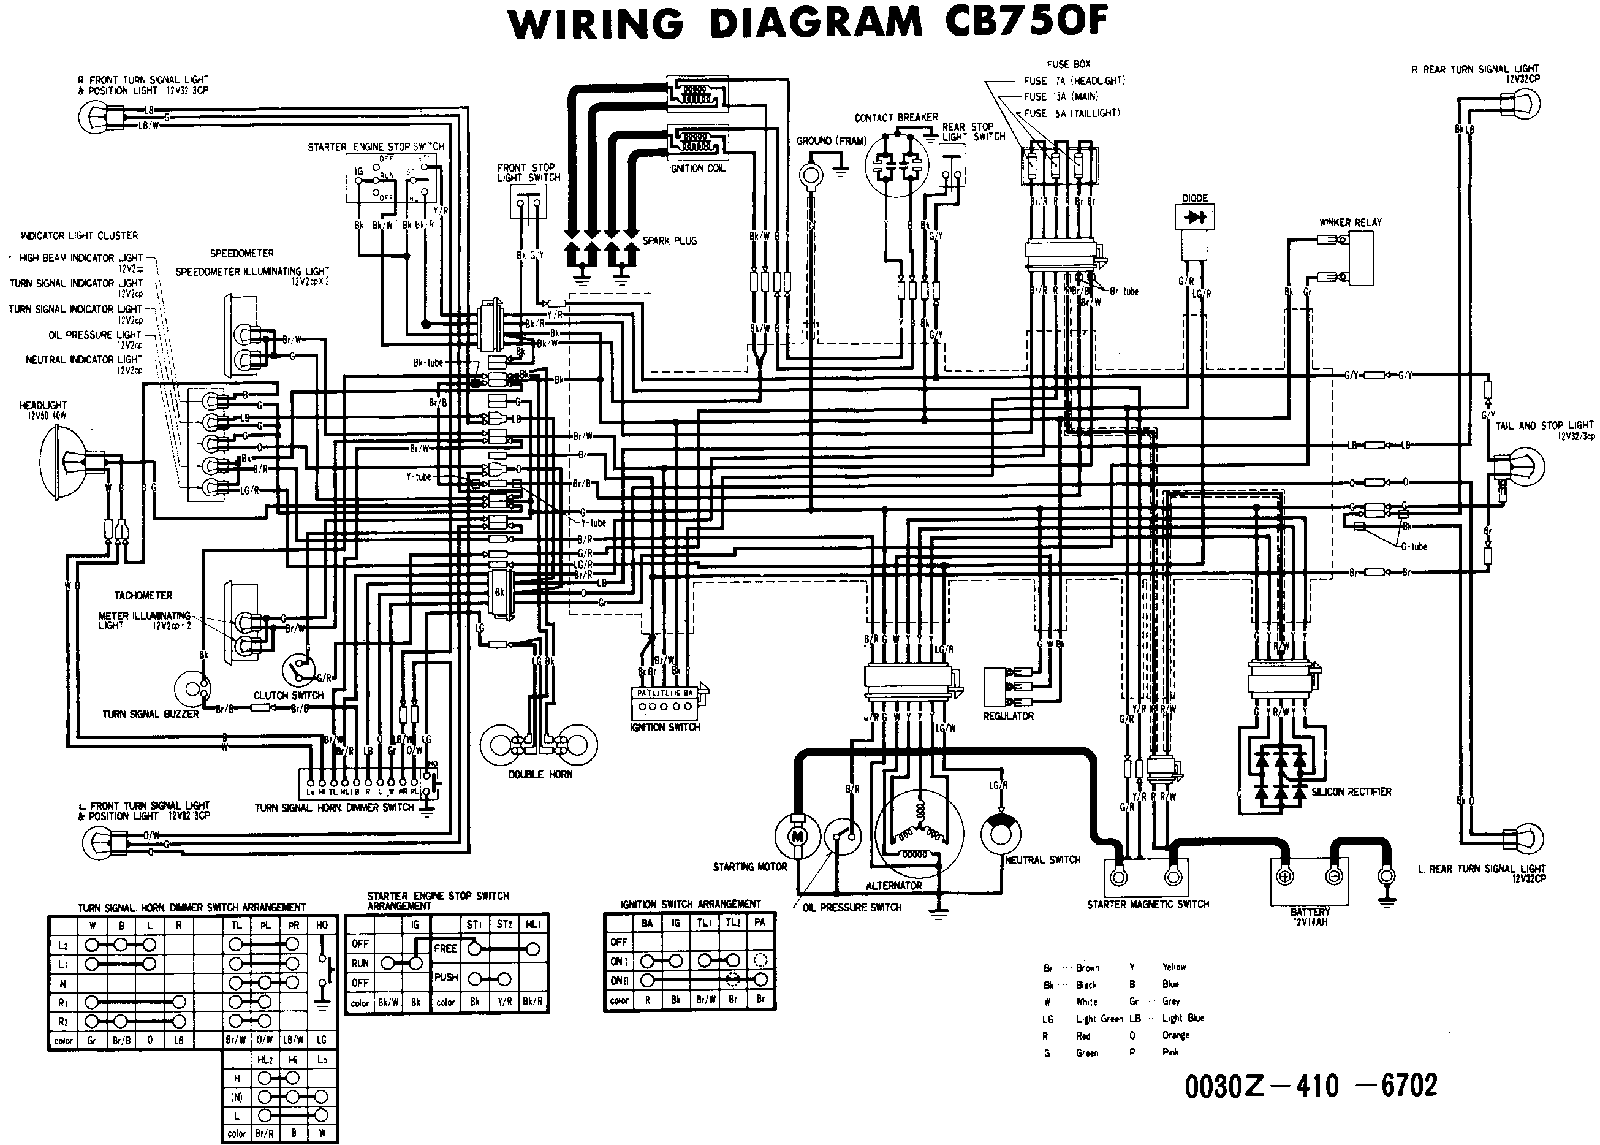 [DIAGRAM] Honda Cb 750 Wiring Diagram FULL Version HD